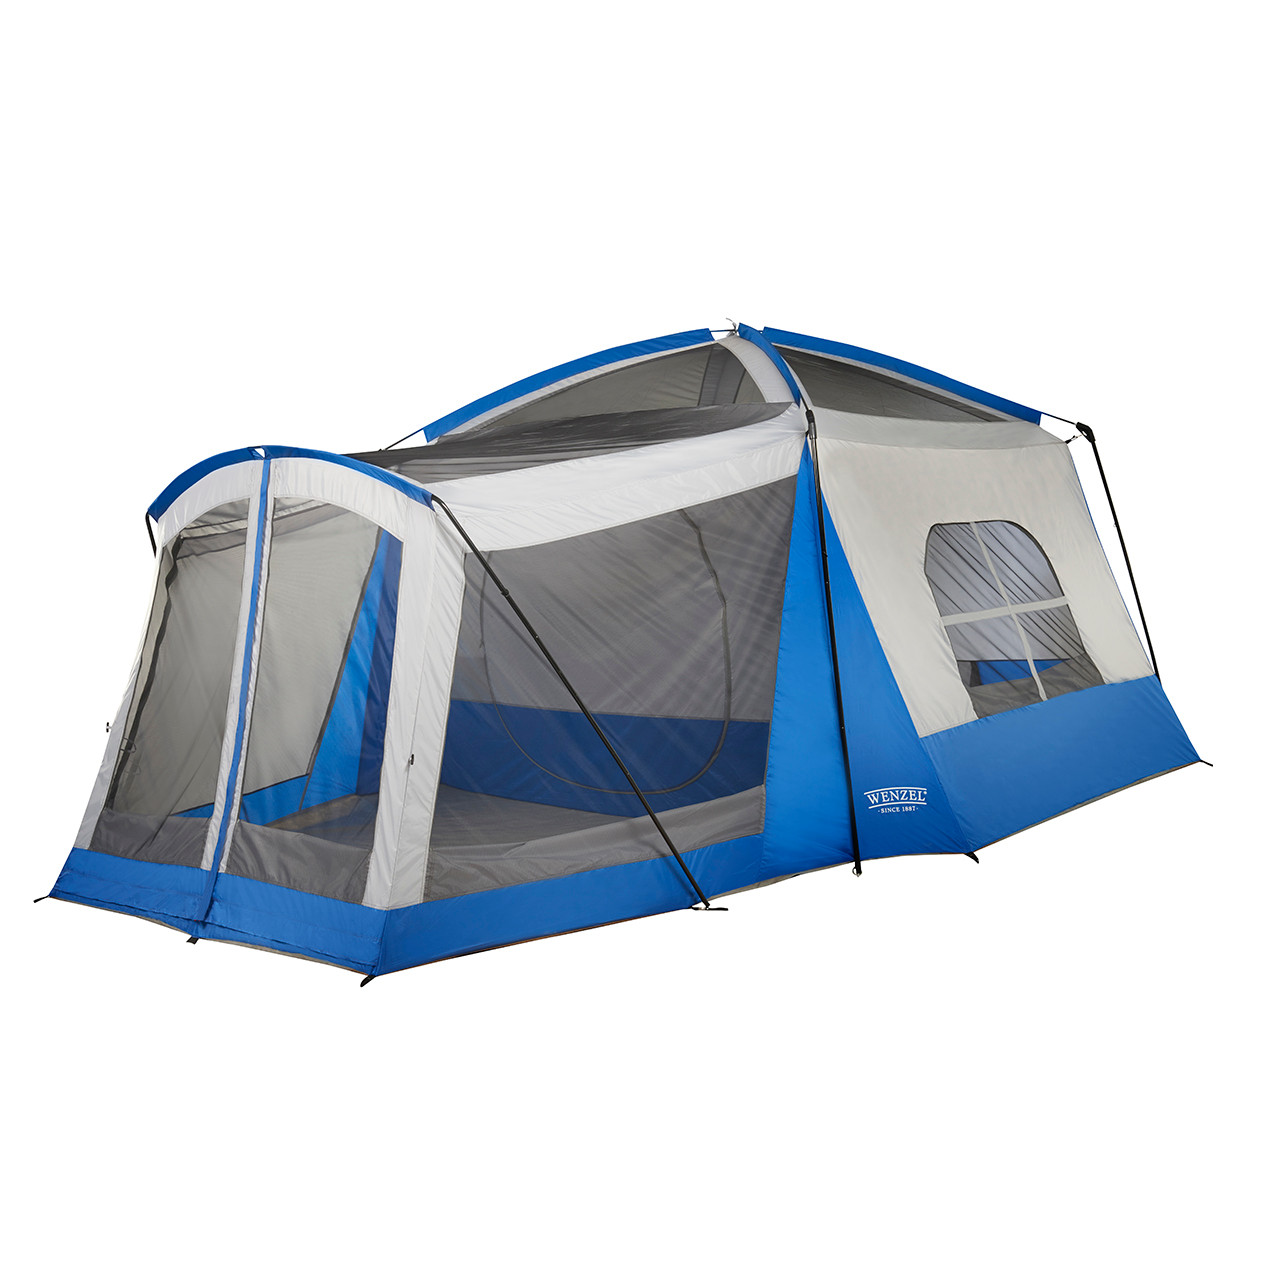 Wenzel Klondike 8 tent, blue and tan, setup without the rain fly on and the vestibule screen windows open and the main tent screen window open